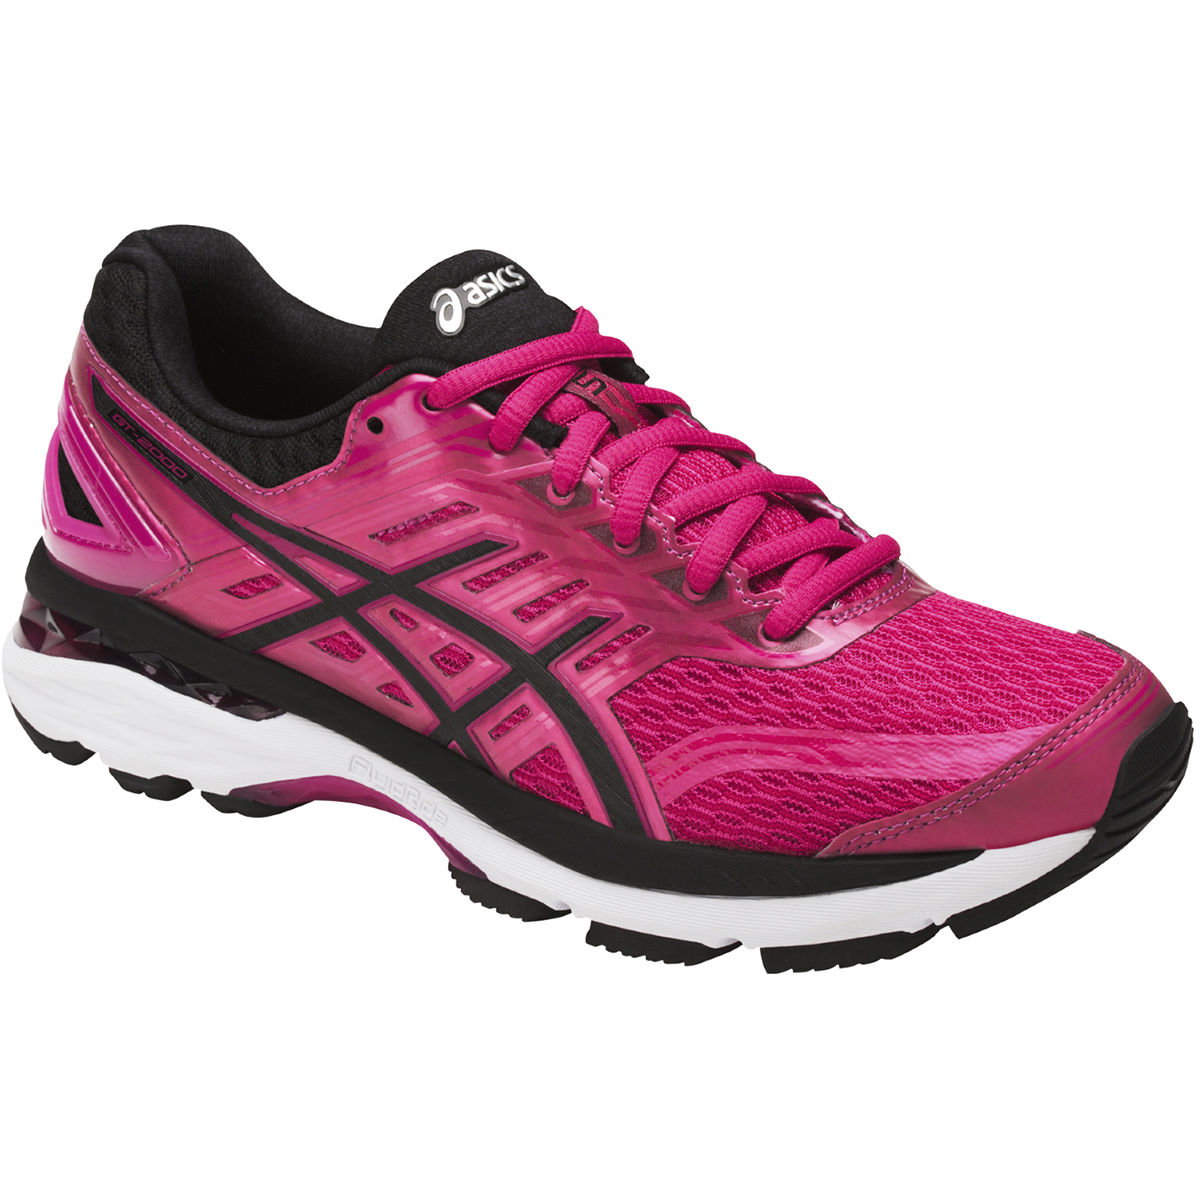 Chaussures Femme Asics GT-2000 5 - UK 4 Cosmo Pink/Black/Whi